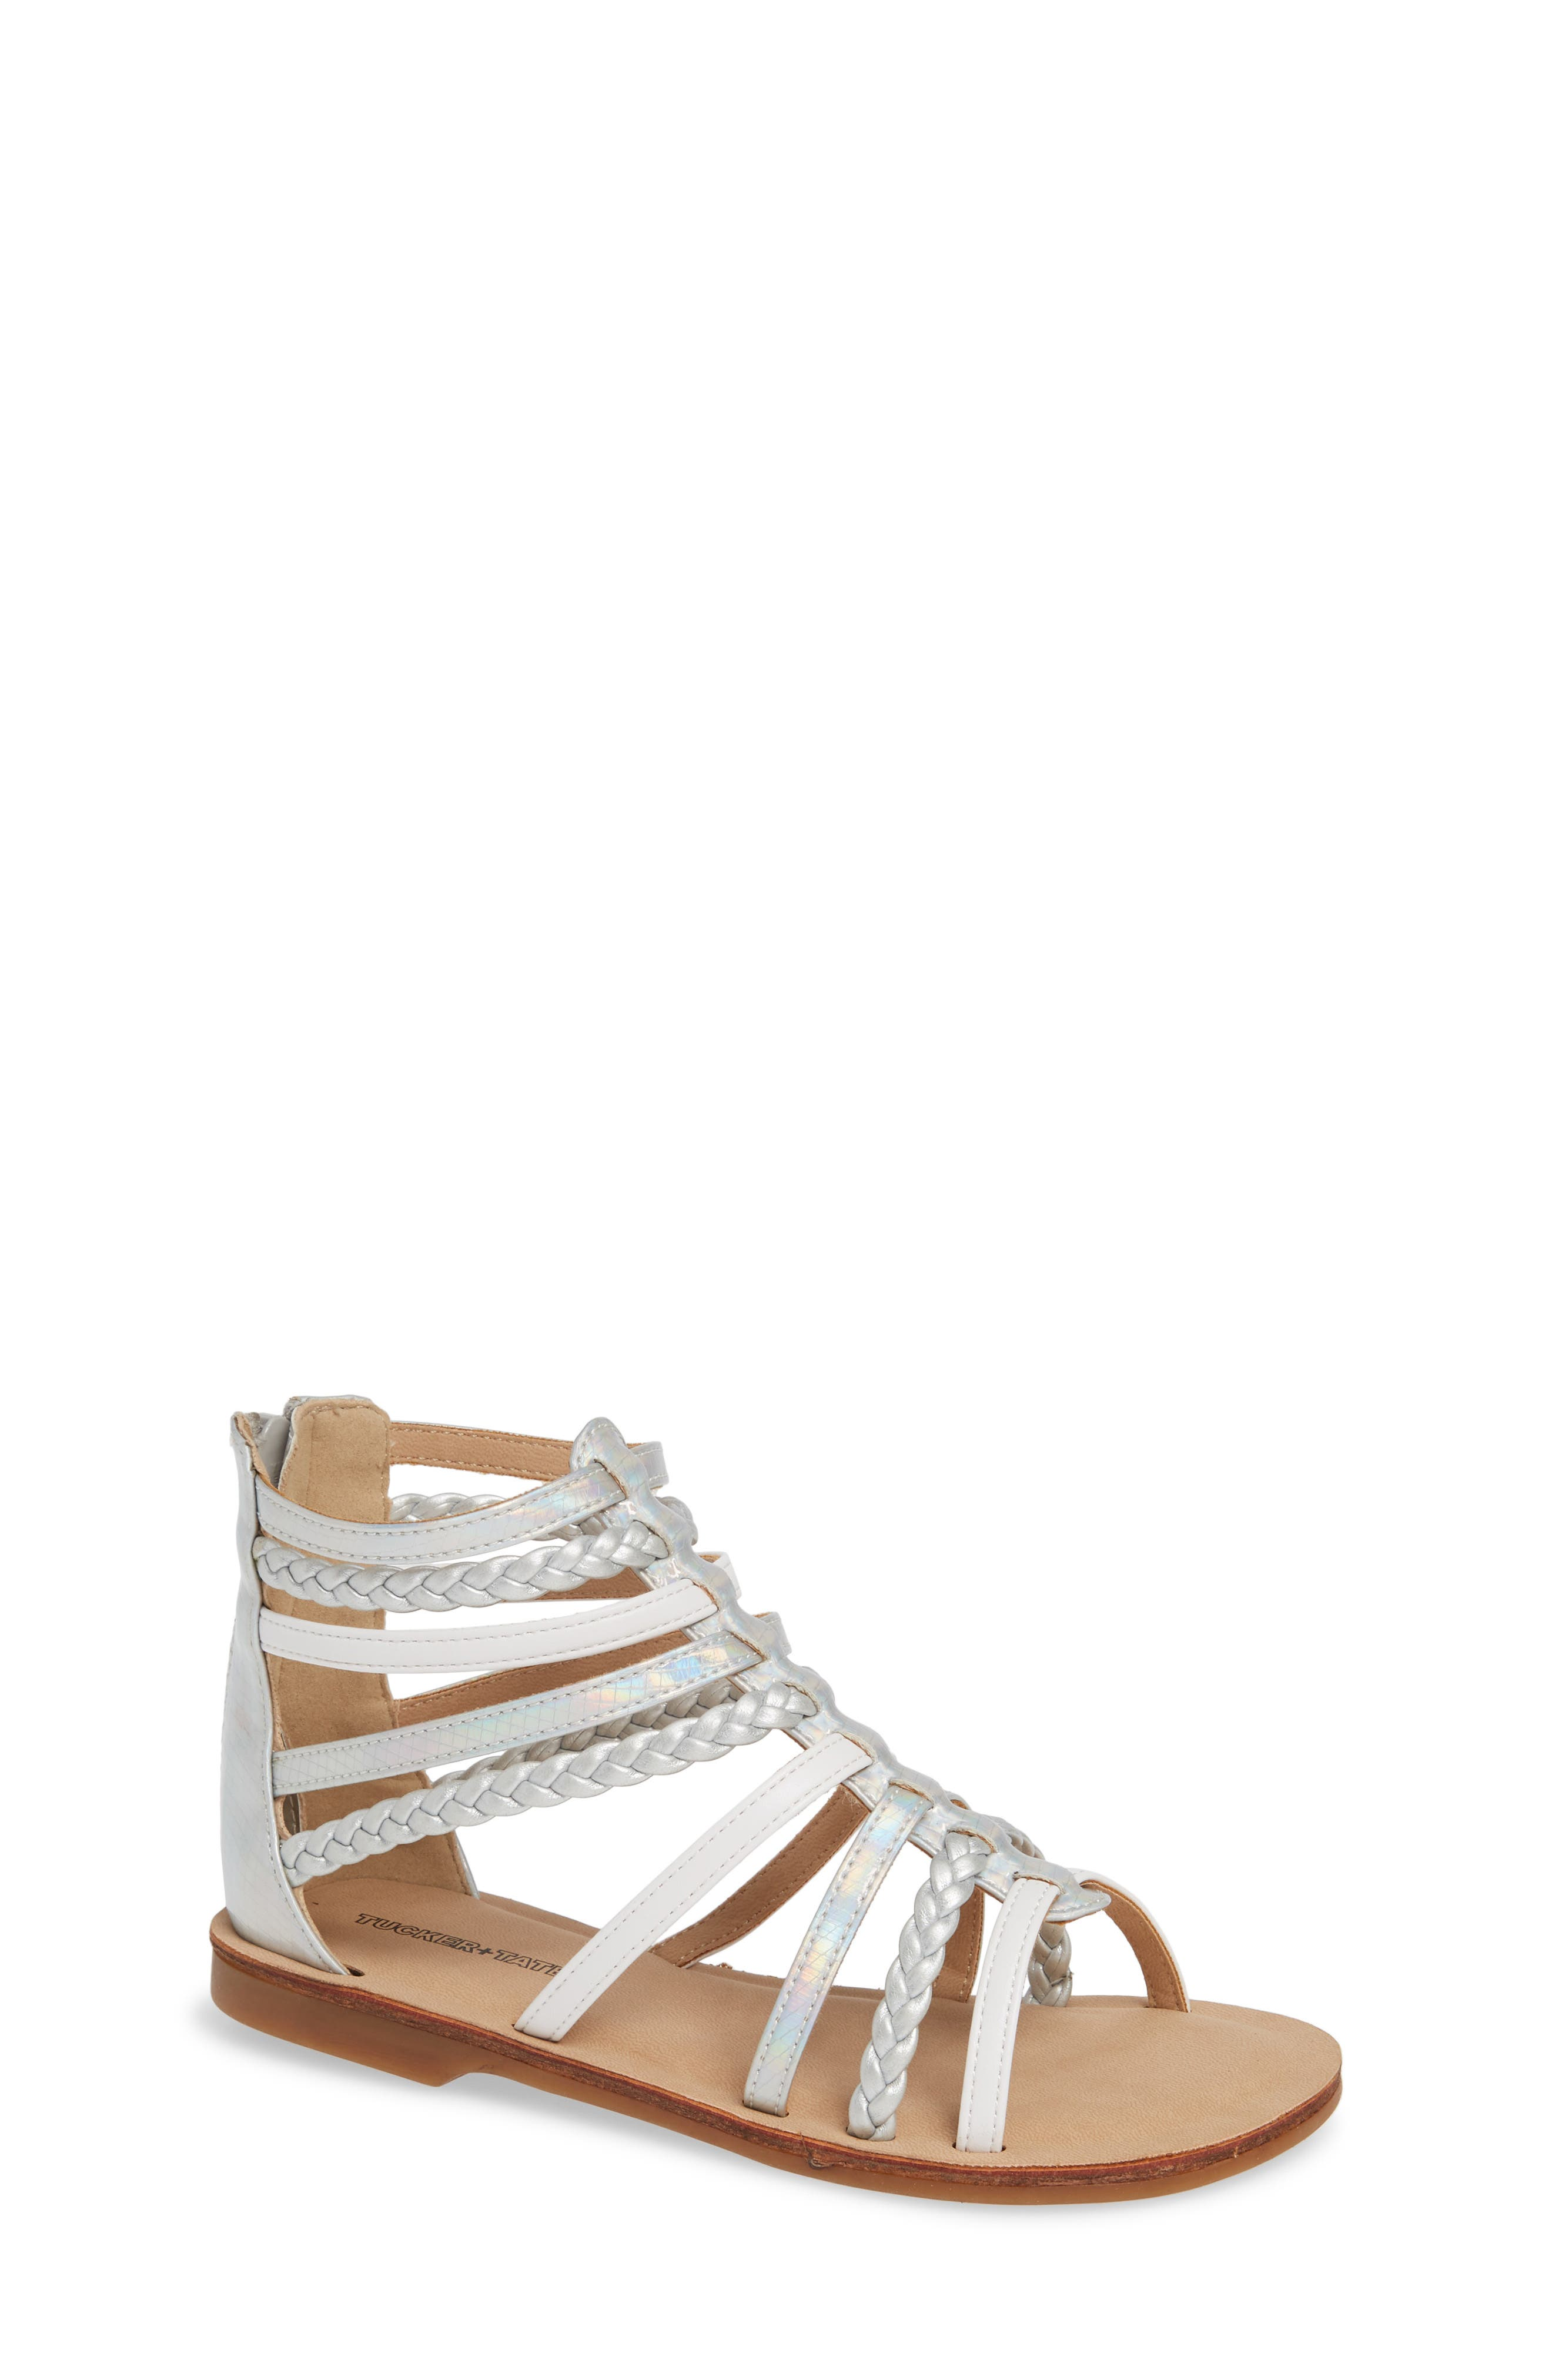 TUCKER + TATE Sonja Braided Gladiator Sandal, Main, color, WHITE/SILVER FAUX LEATHER